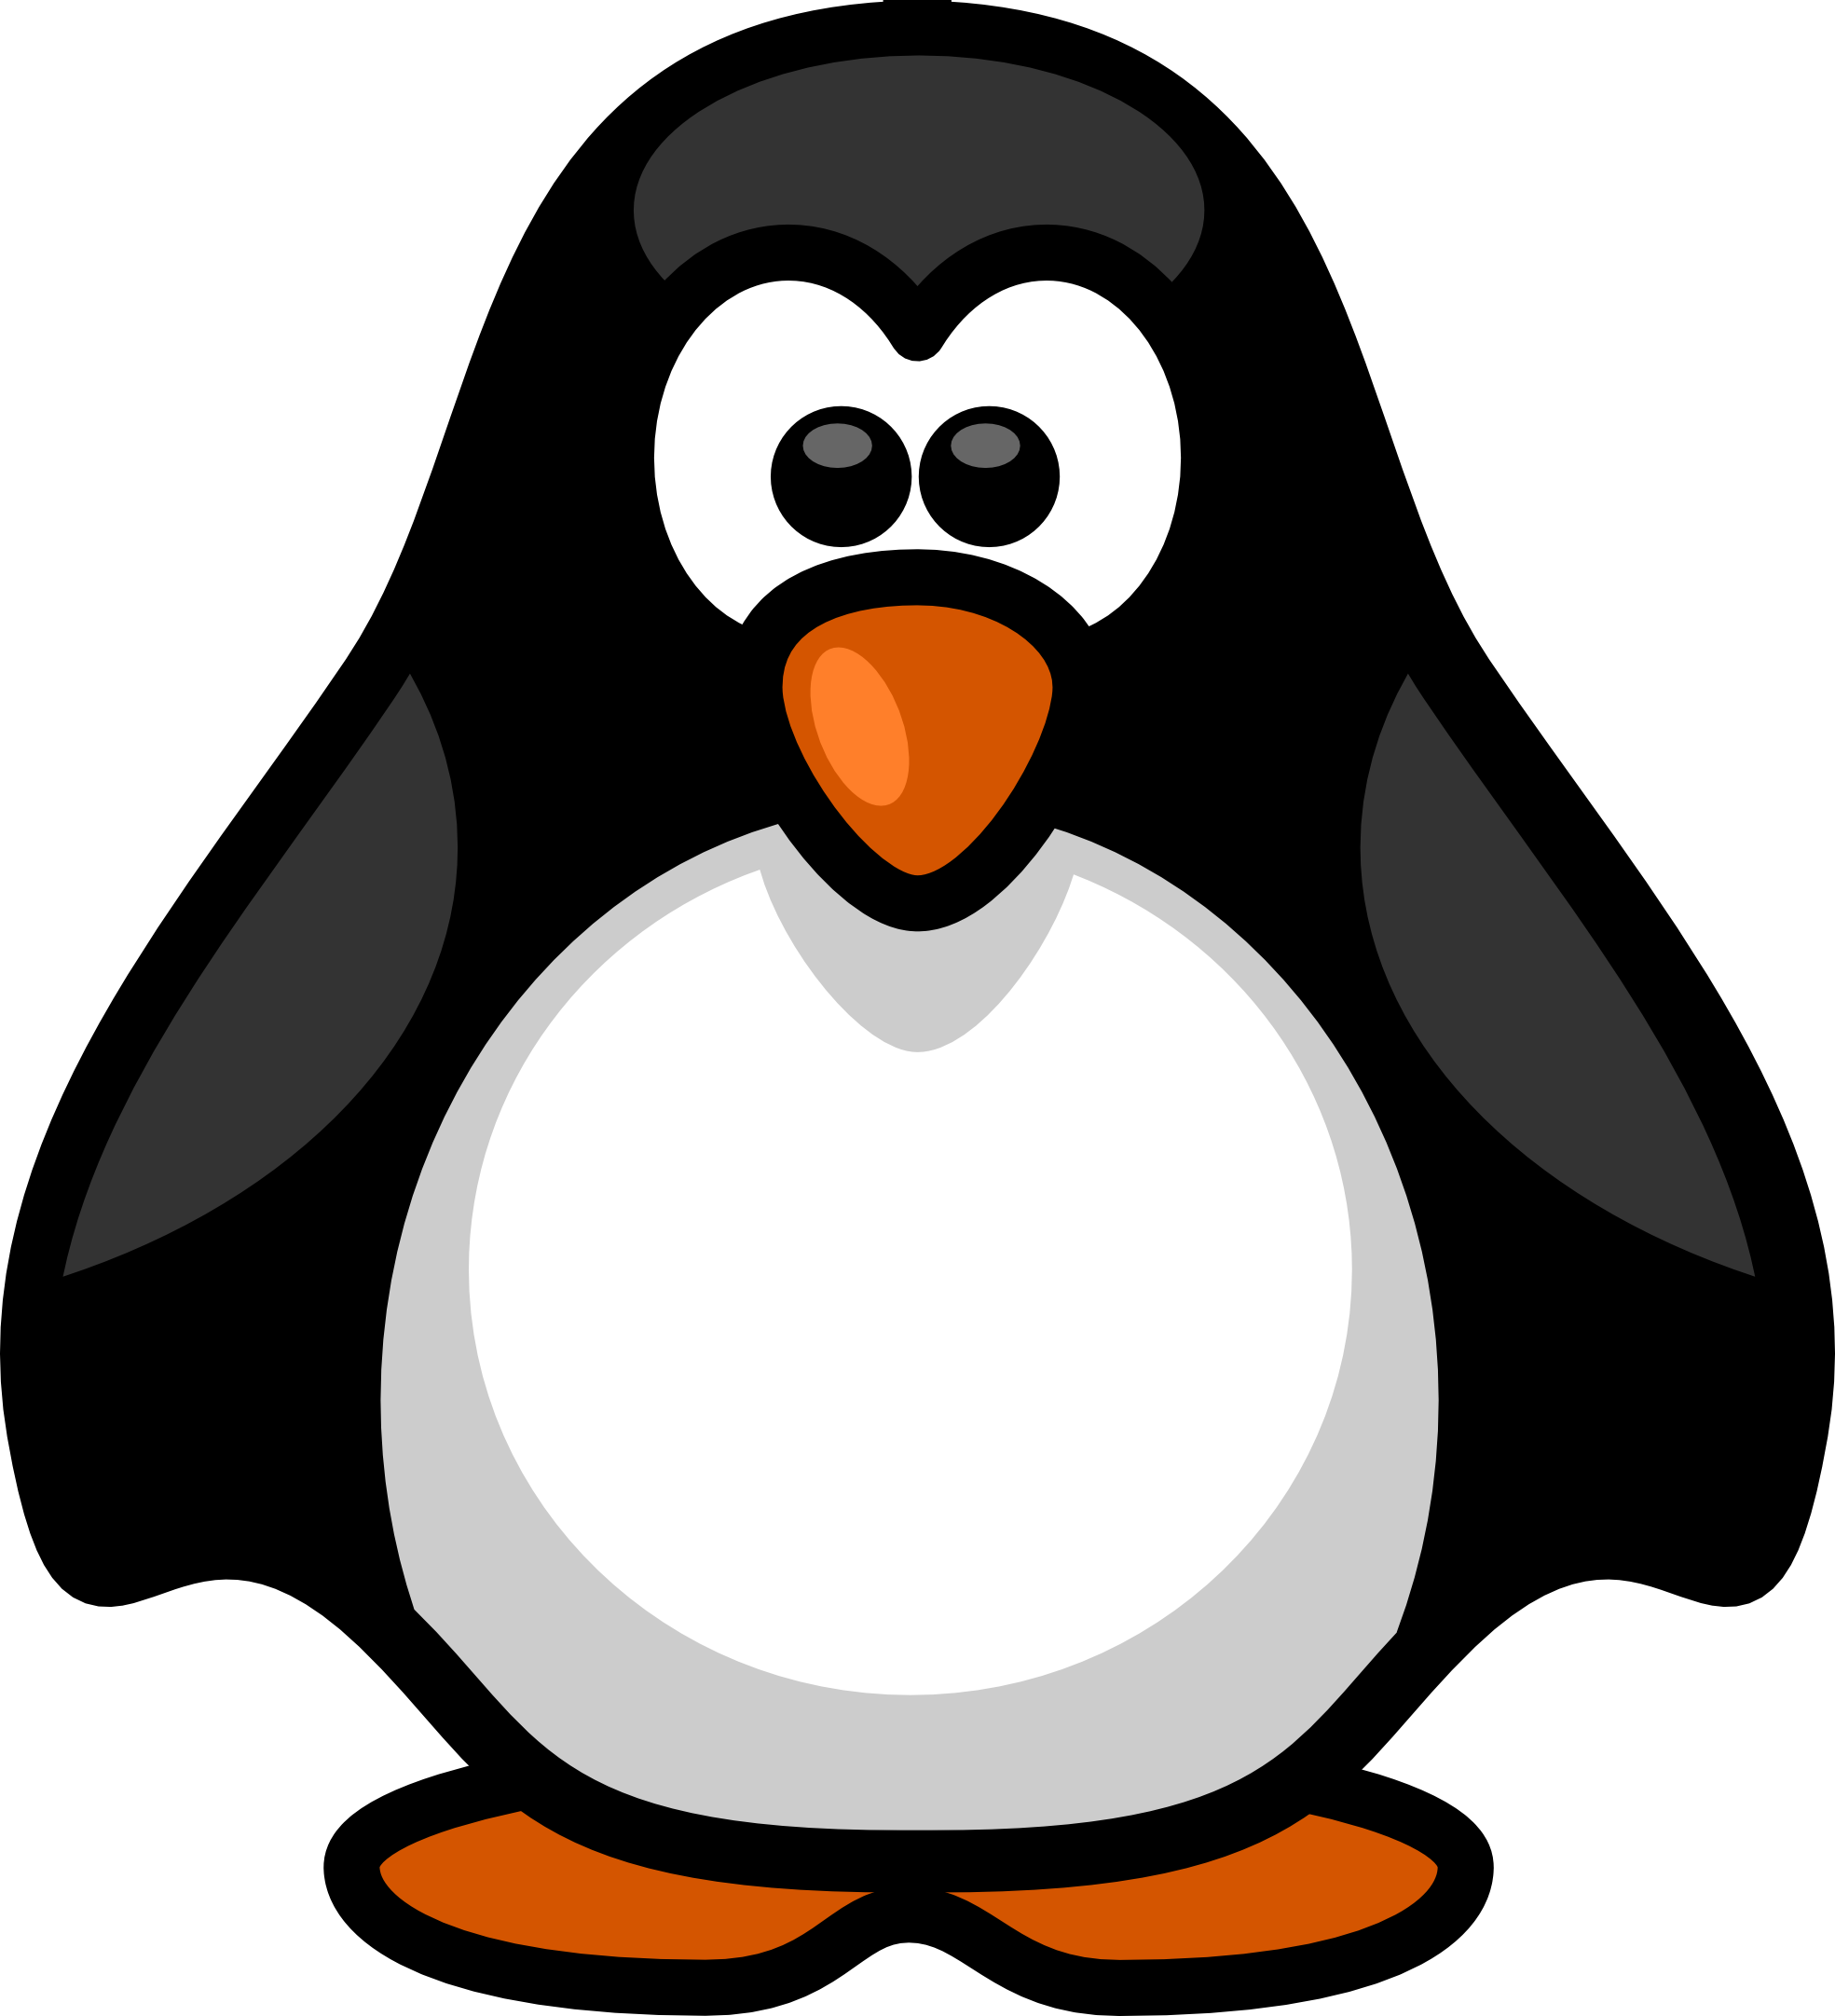 Penguin clipart #7, Download drawings